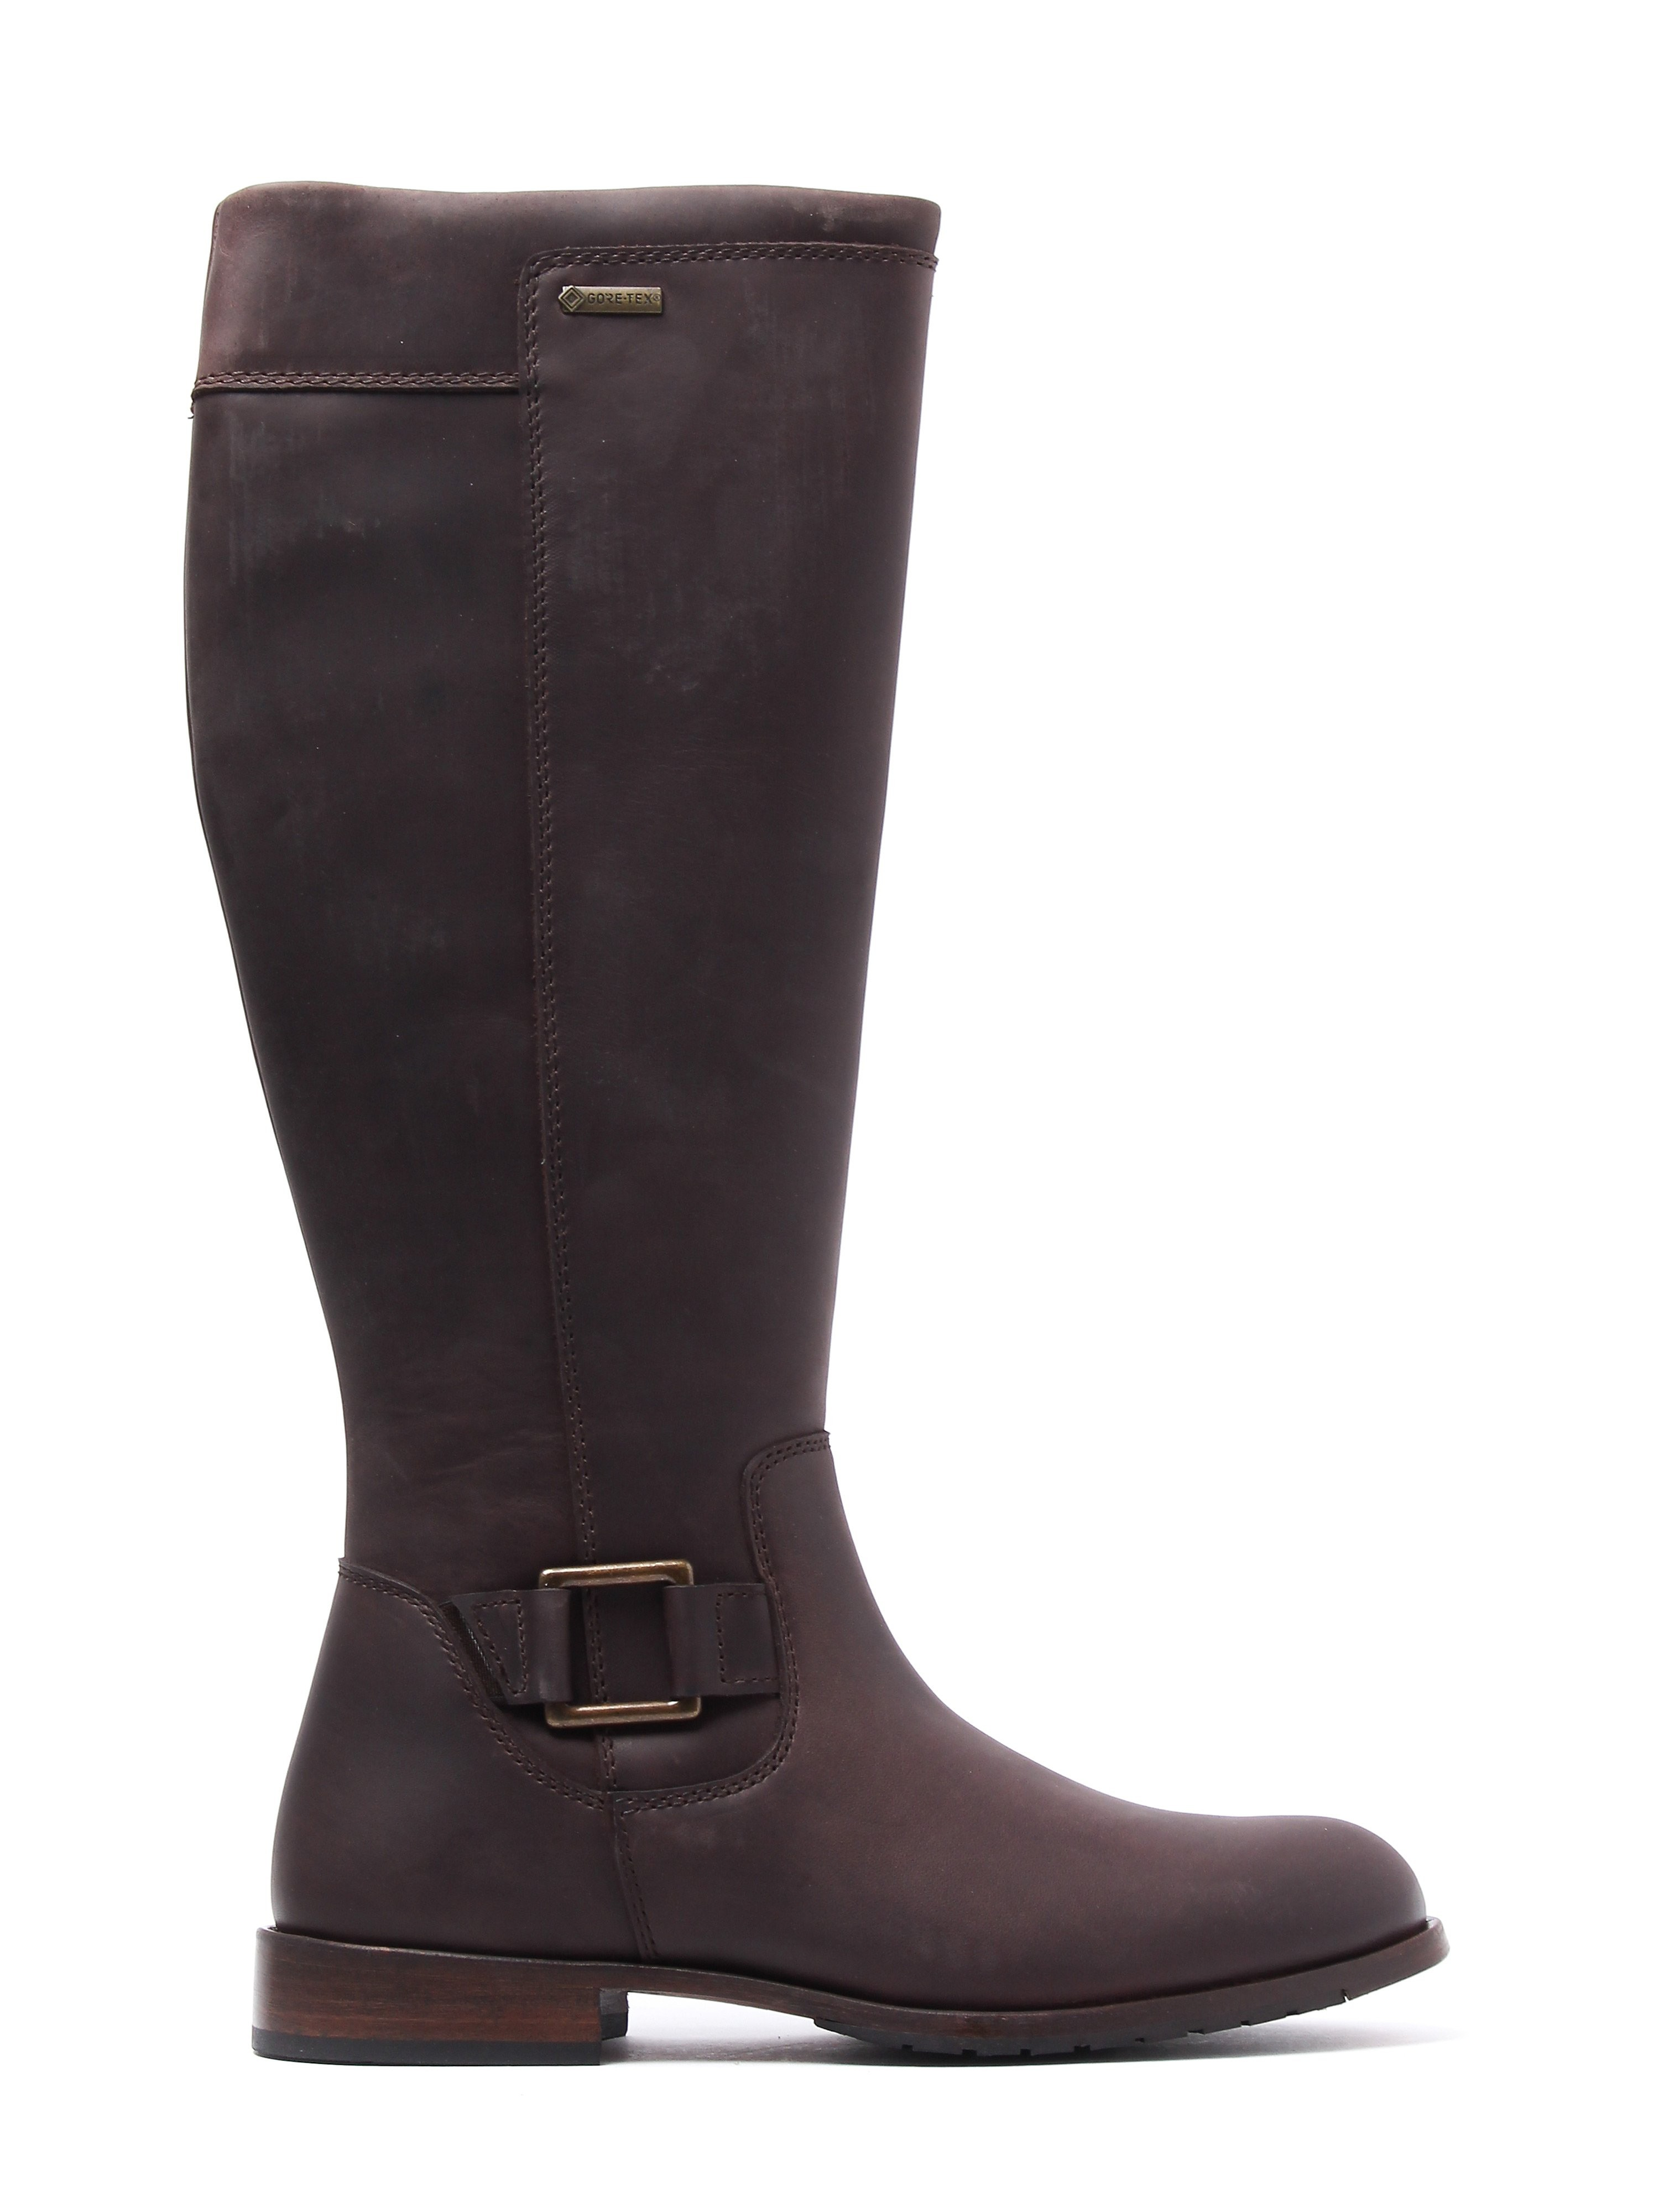 Dubarry Women's Limerick Knee Length Boots - Old Rum Leather